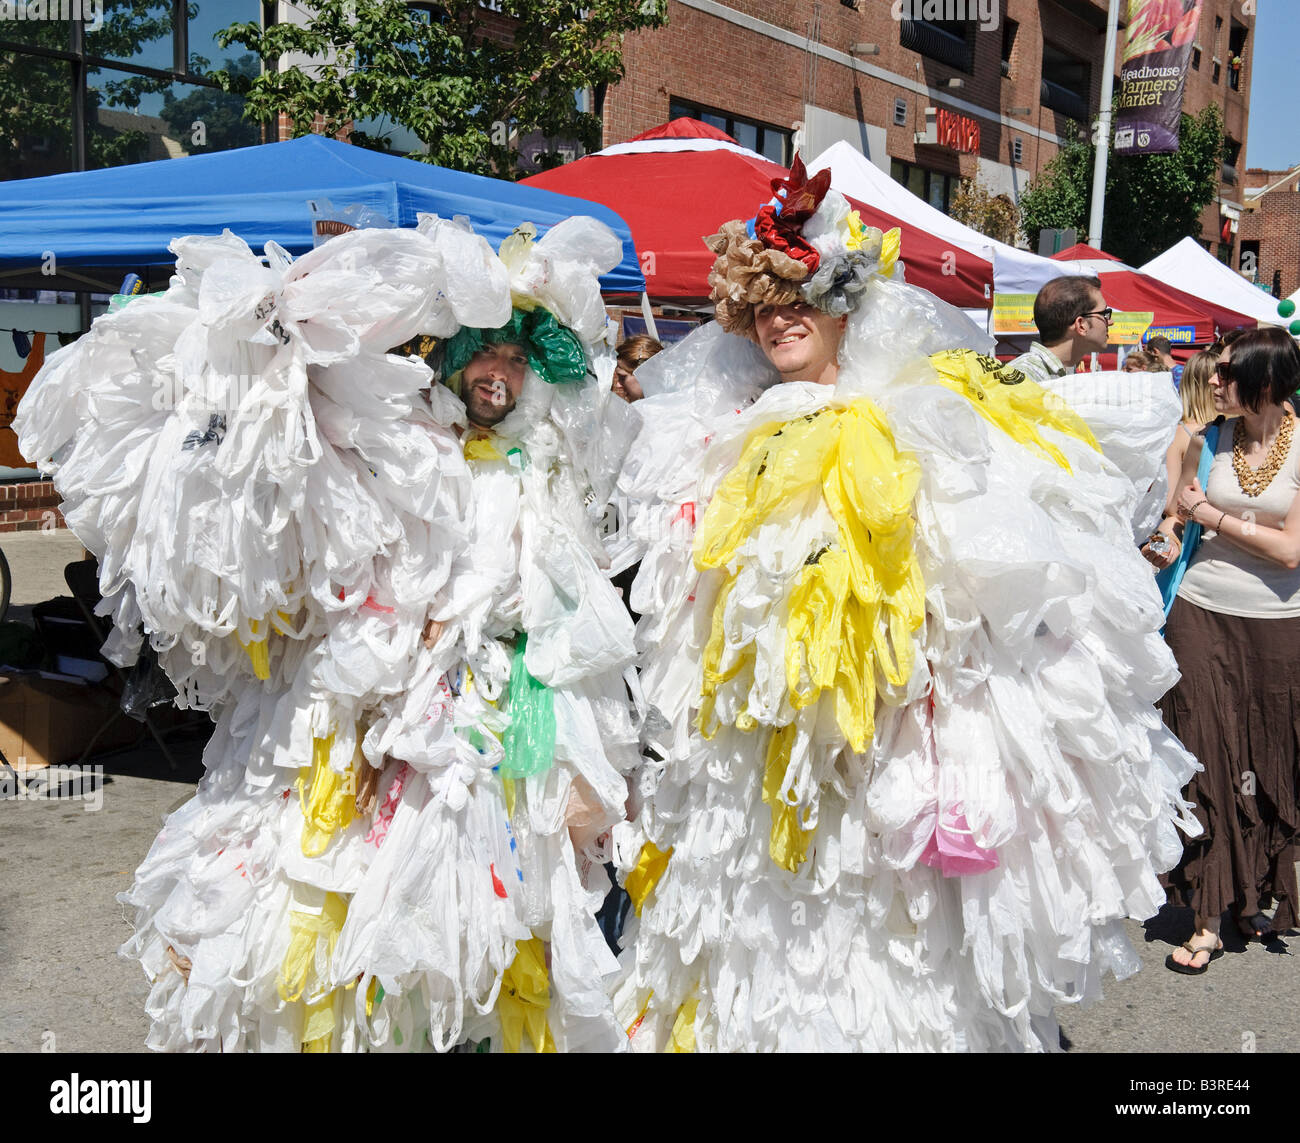 Plastic trash bag men, GreenFest Philly 2008, Philadelphia, Pa, USA - Stock Image